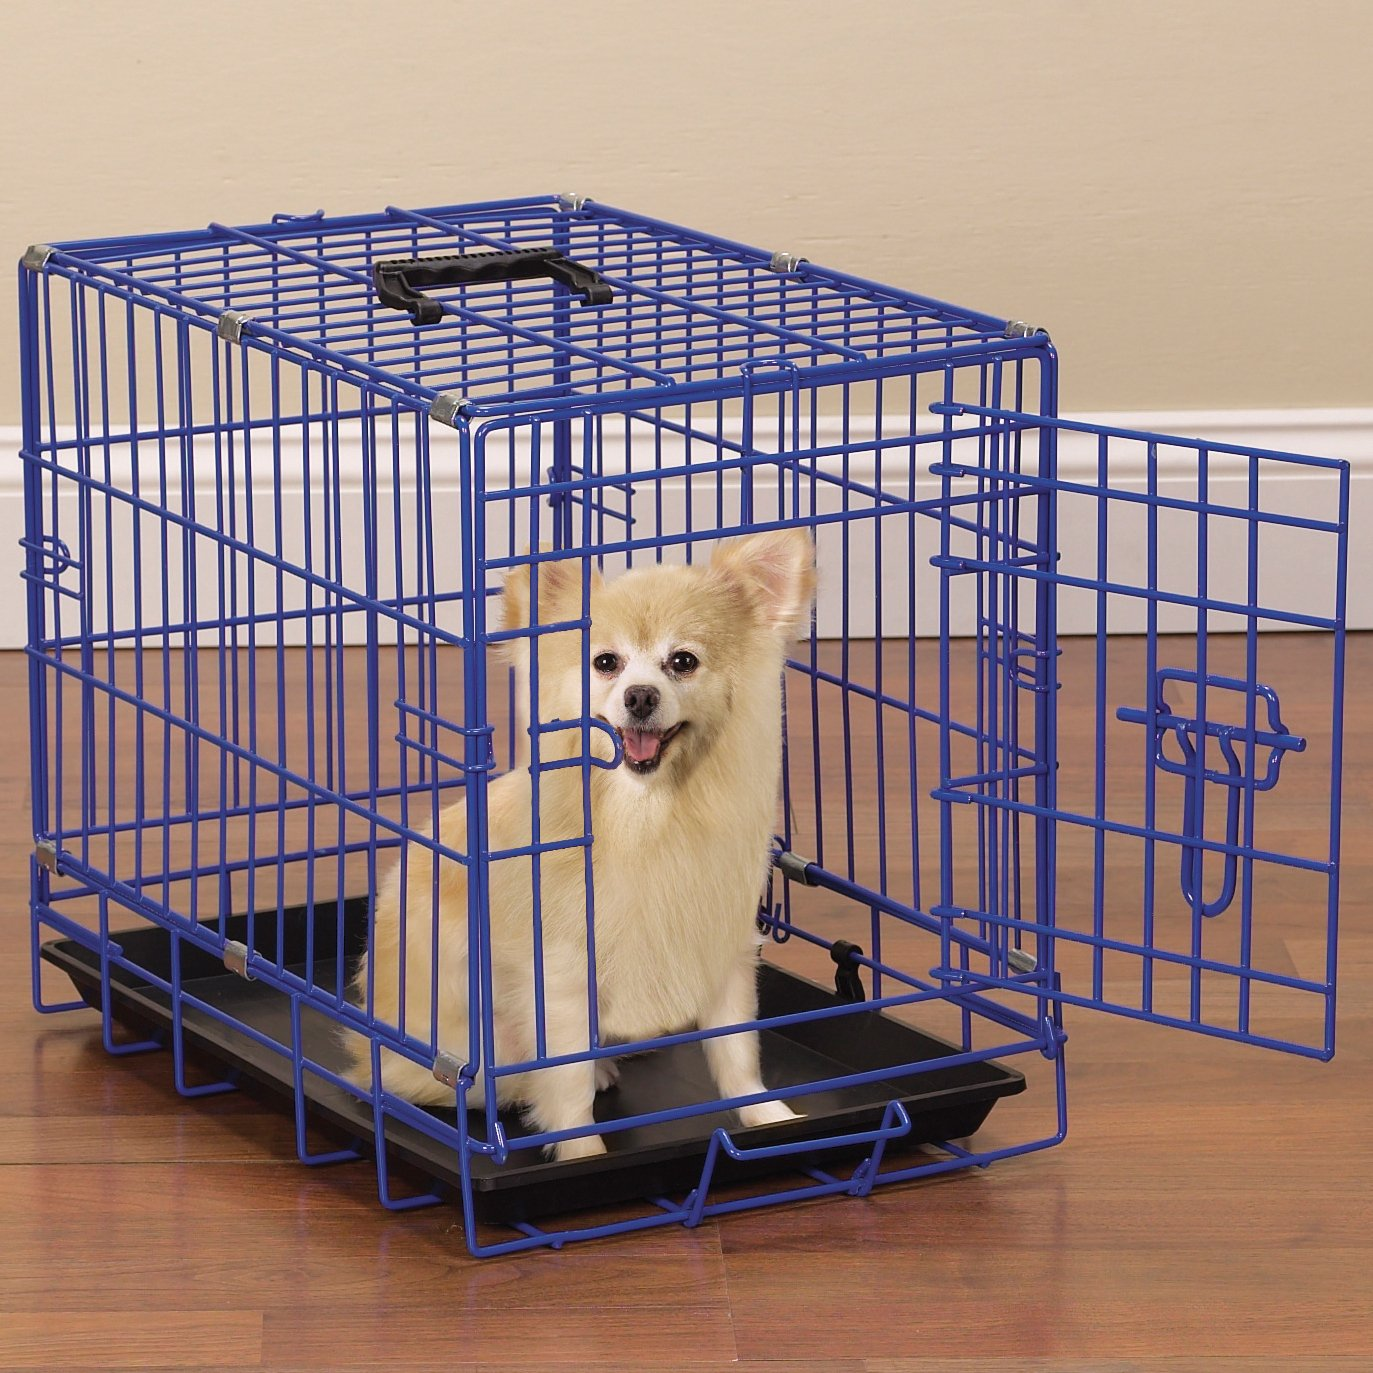 amazoncom  proselect crate appeal fashion color dog crates for  - amazoncom  proselect crate appeal fashion color dog crates for dogs andpets  pet crates  pet supplies